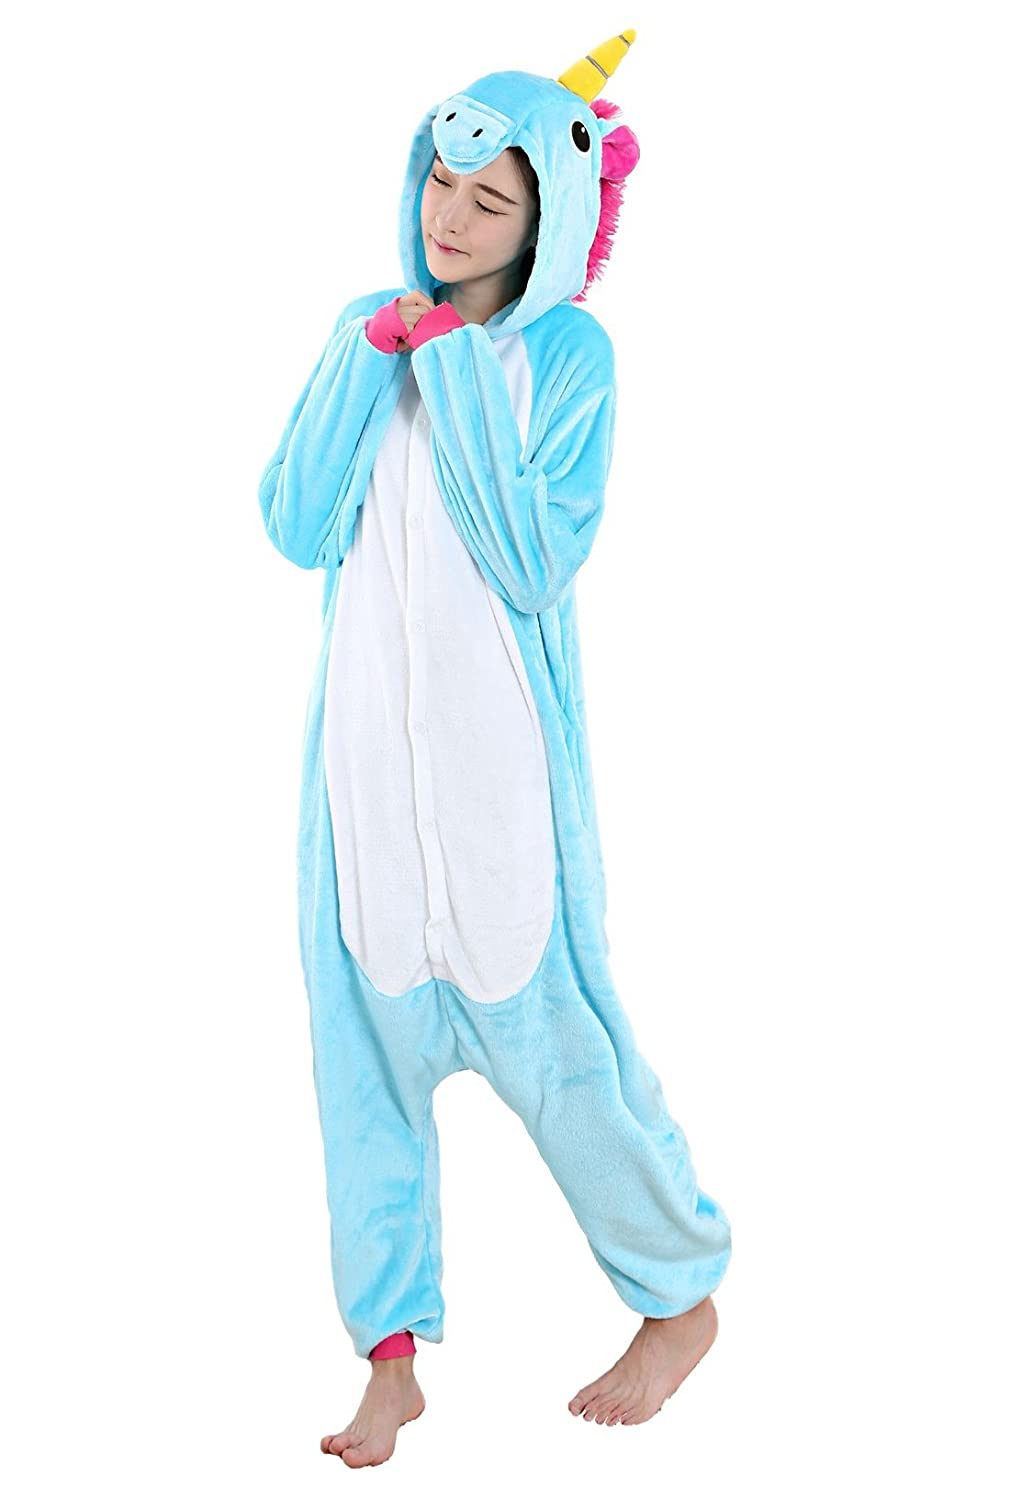 Nicetage Unisex Cartoon Animal Cosplay Halloween Costume Onesie Pajamas ukTianma-Blau-M